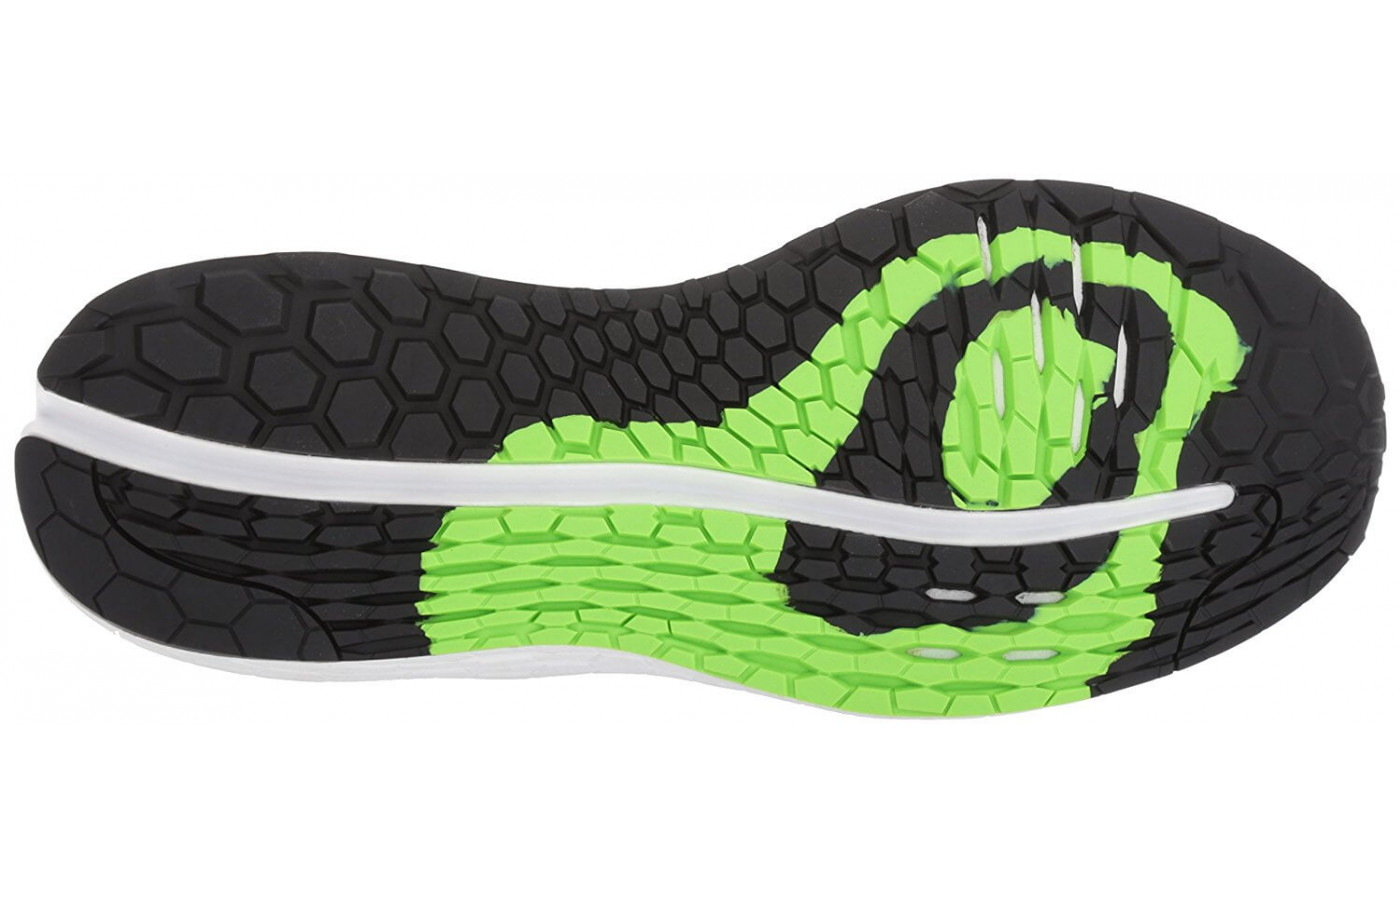 The dual rubber in the outsole adds more traction and grip.